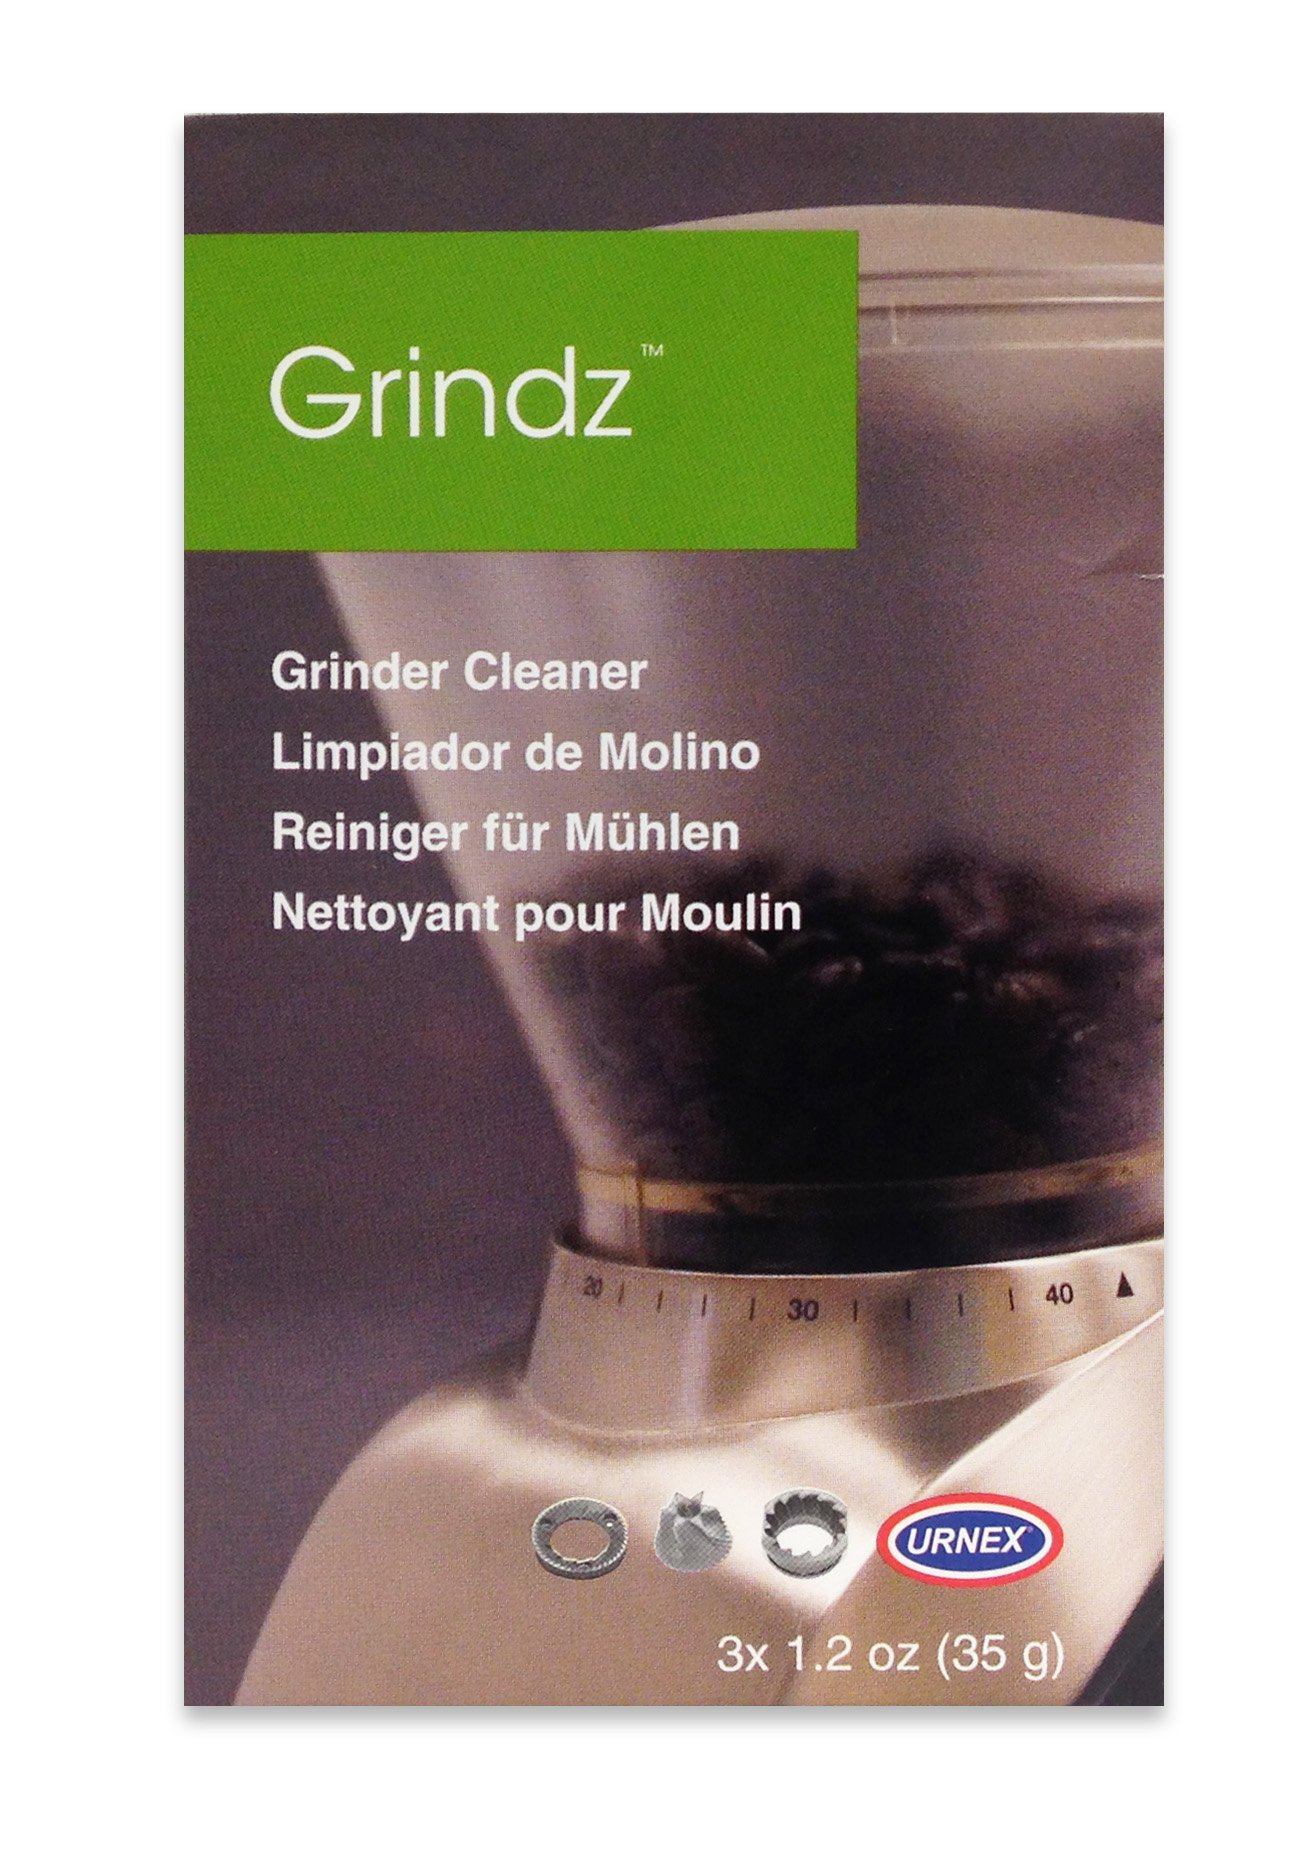 Urnex Grindz Professional Coffee Grinder Cleaning Tablets, 3 Single Use Packets